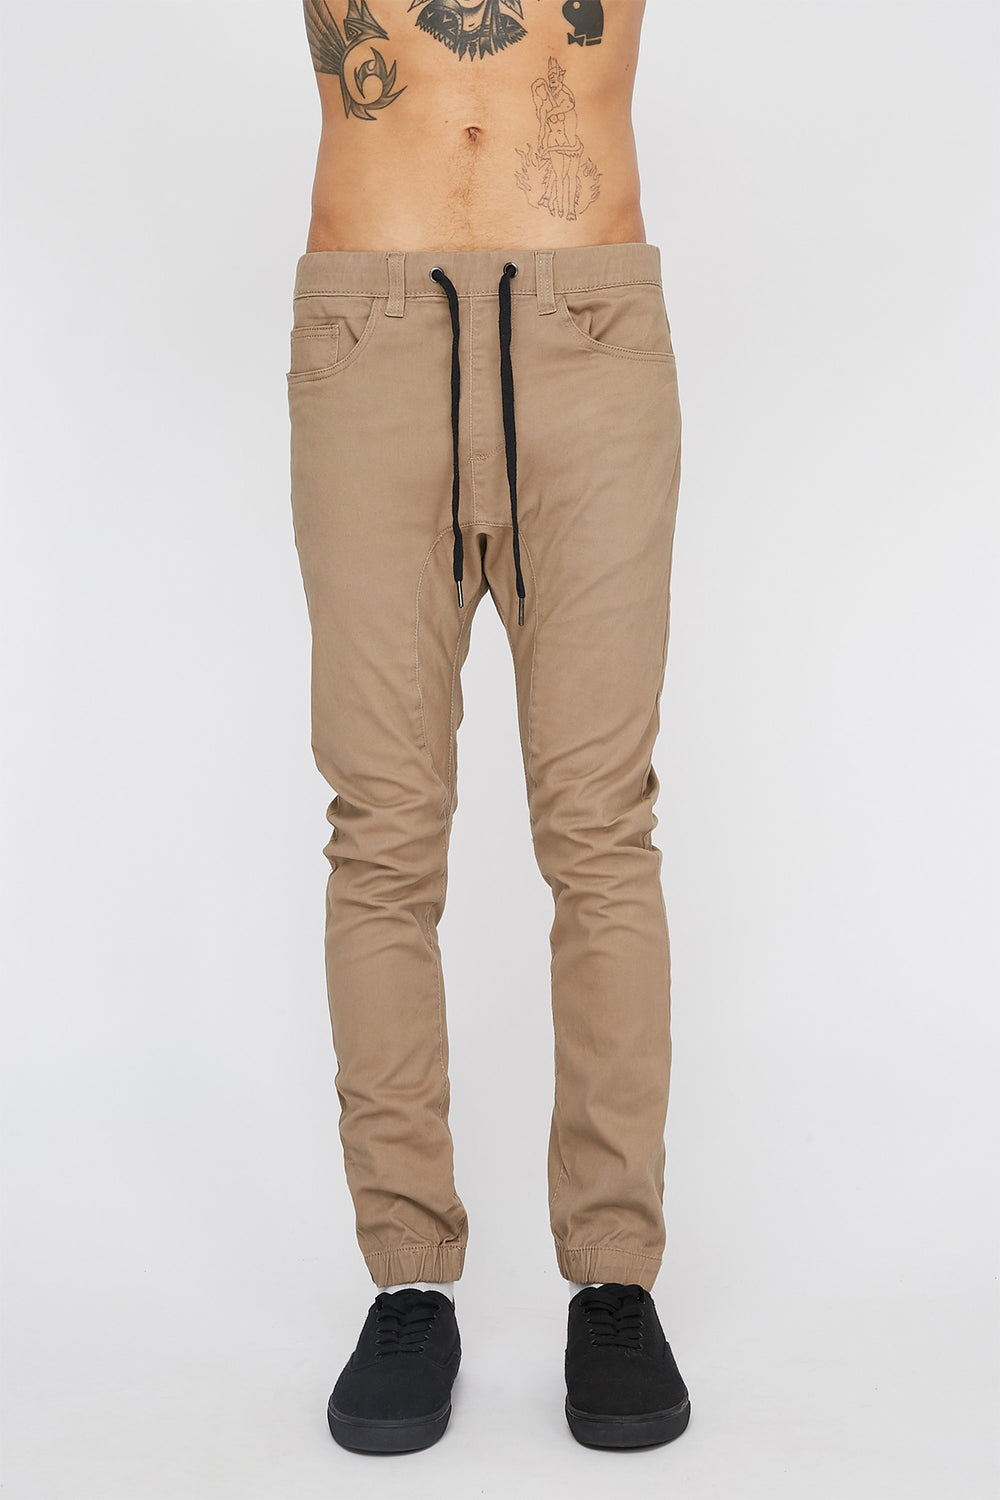 Zoo York Mens 5-Pocket Jogger Sand